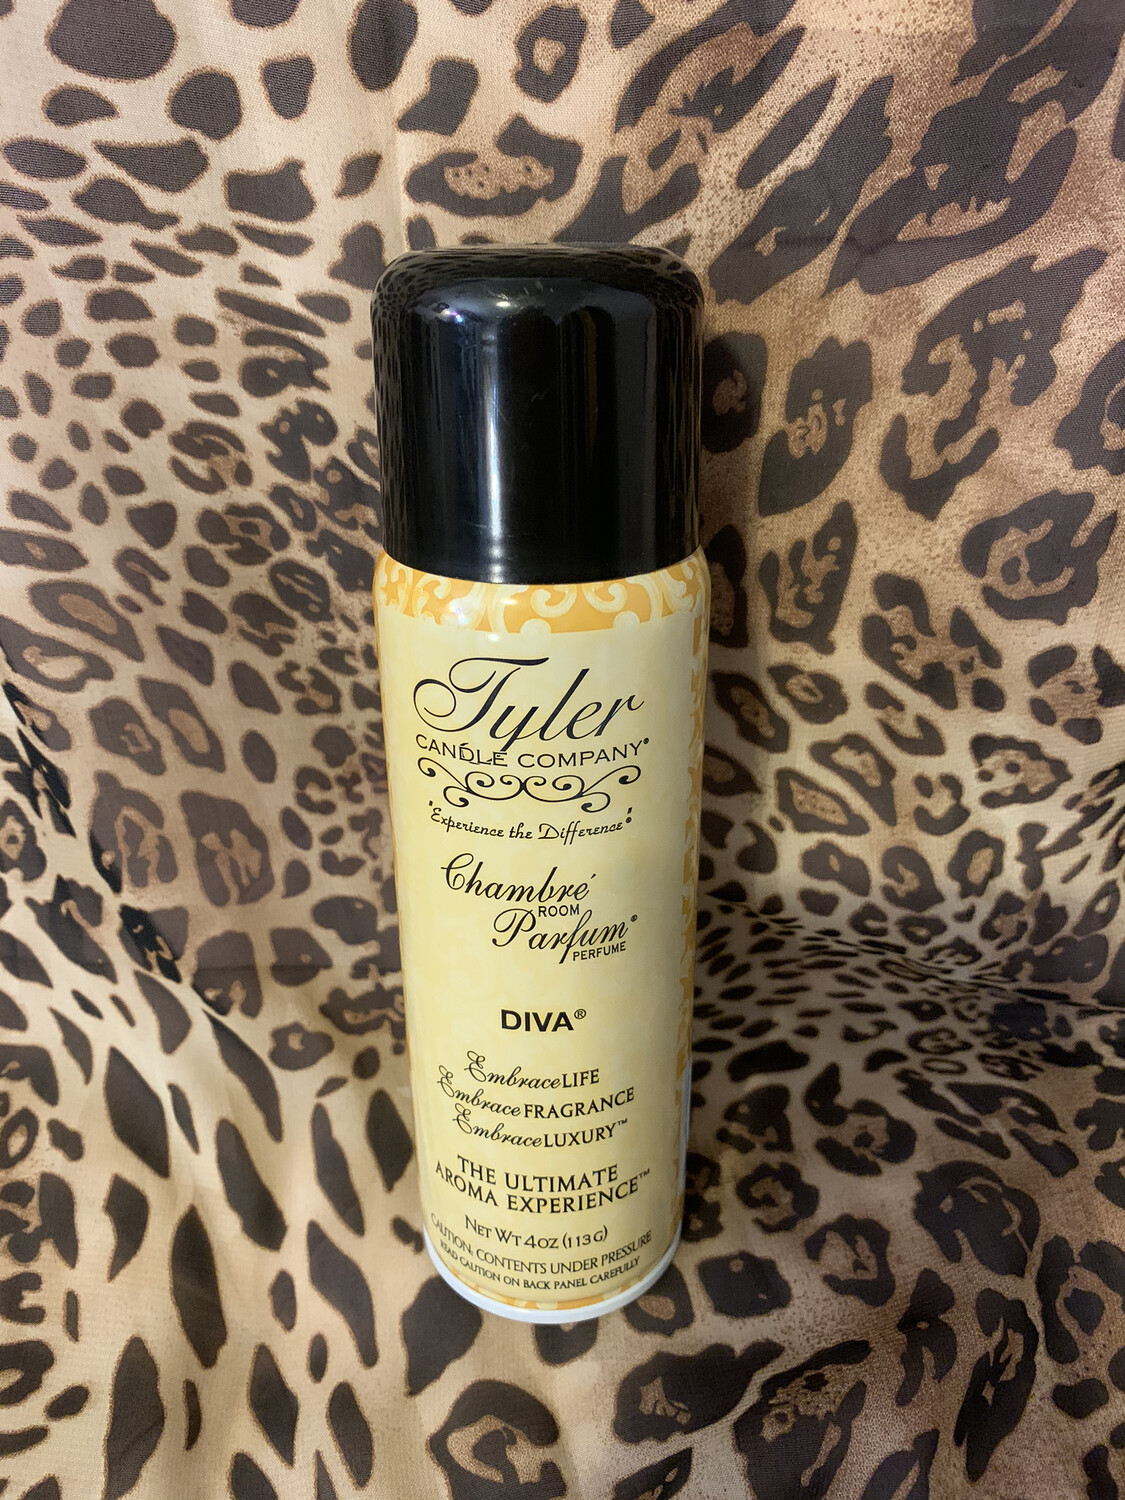 Room Spray By Tyler Candles Diva Scent